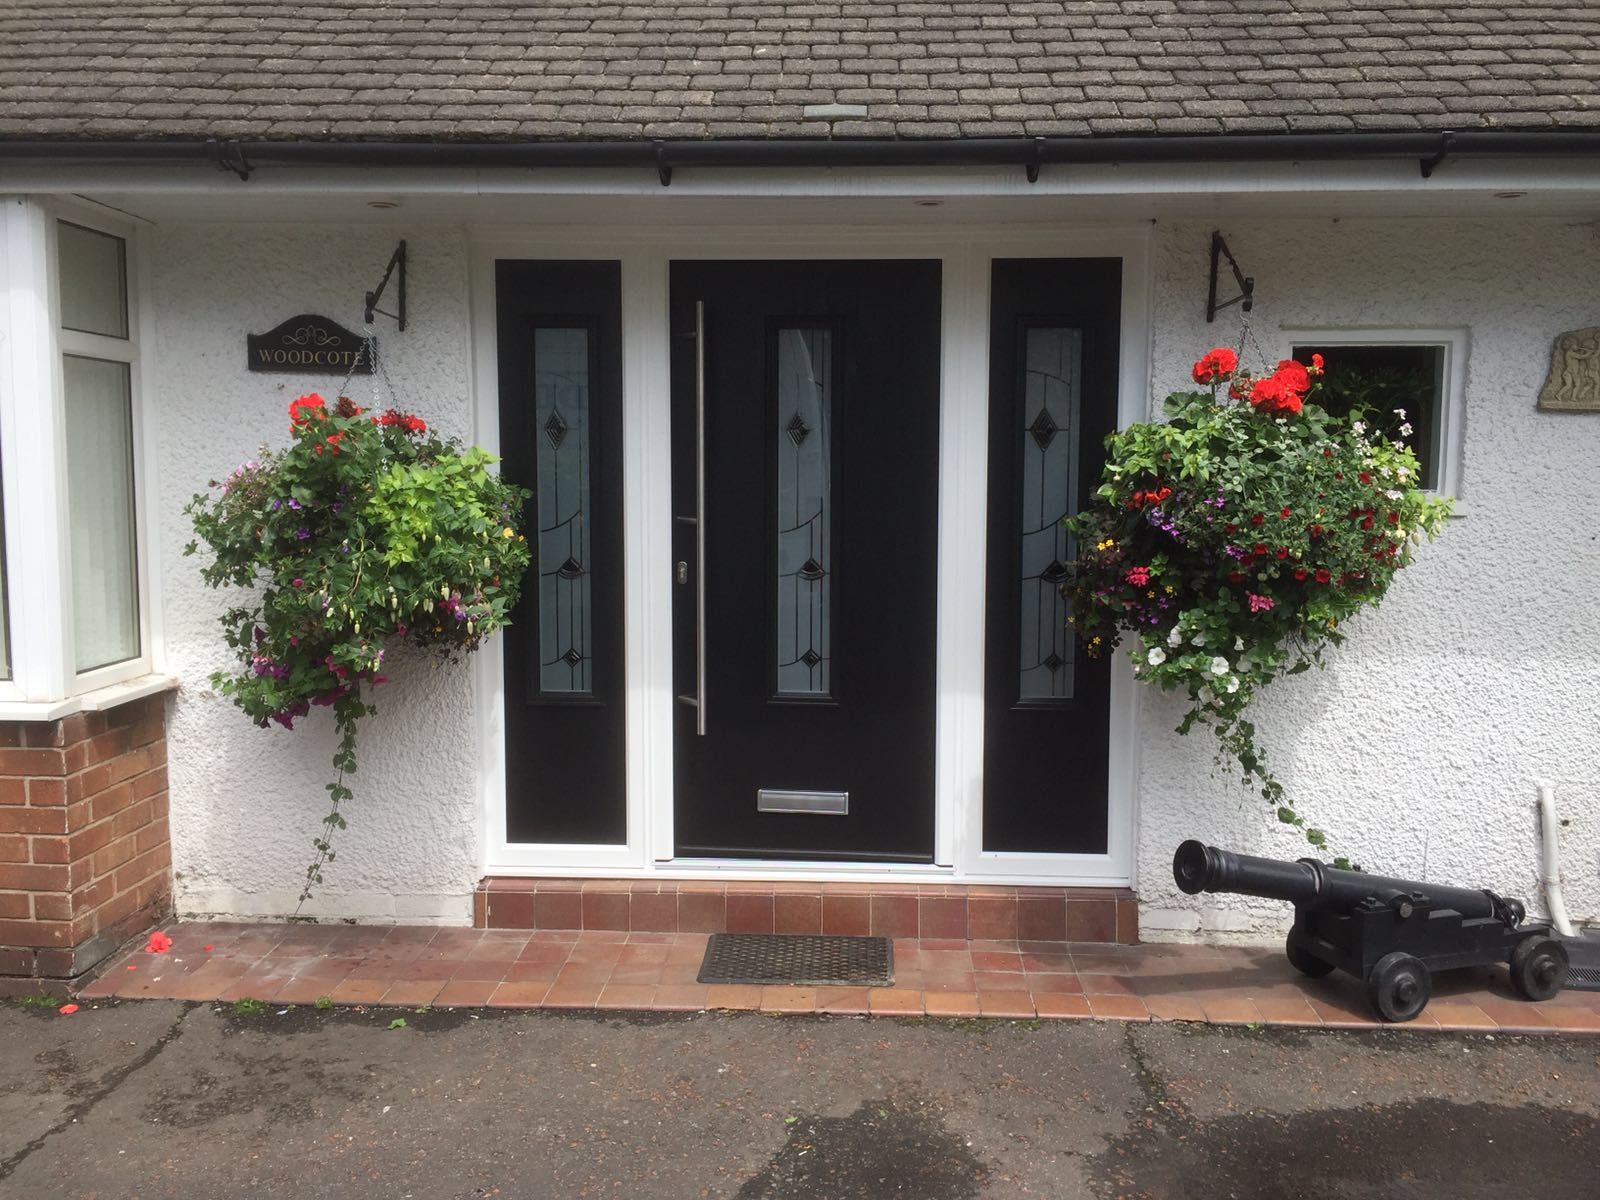 Cundiff S Glass Amp Glazing Ltd Solidor